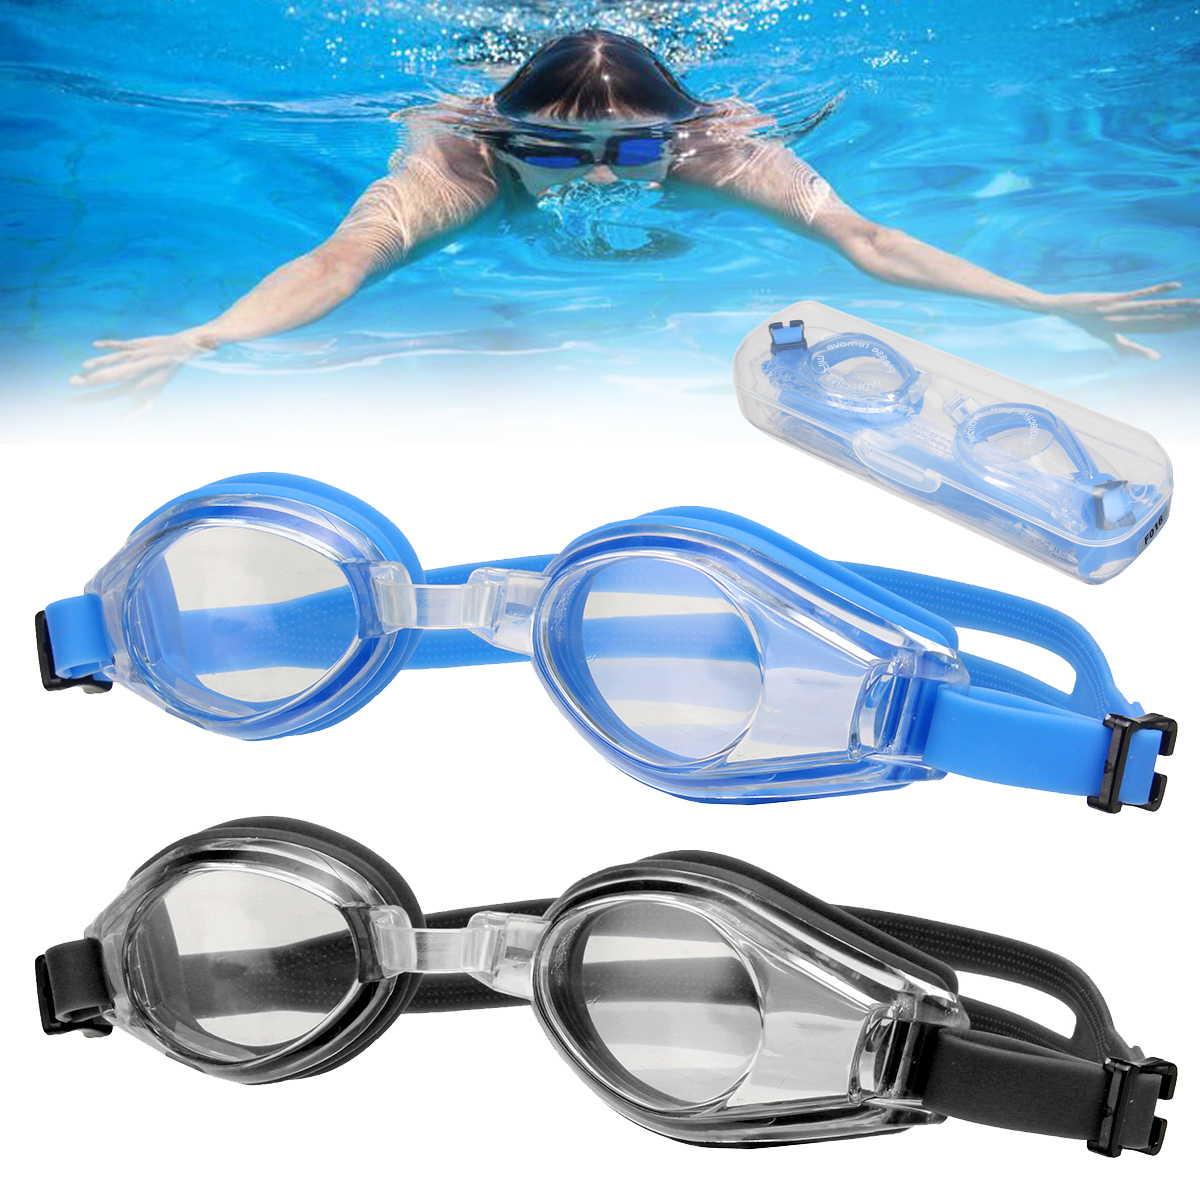 Anti Fog Swimming Goggles Sports Eyewear Swimming glasses for Men Women Boys Girls Adult Junior Kids With Box ...